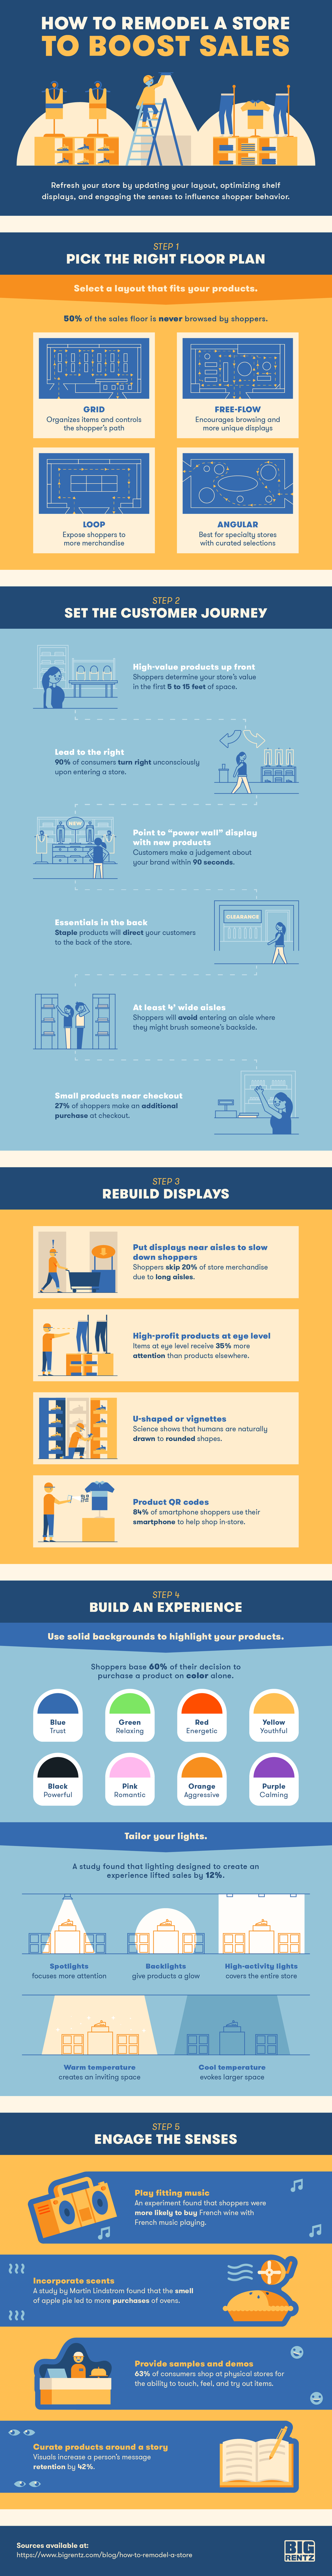 Tips to remodel your store including floor plans, customer path, displays, creating an experience, and engaging the senses